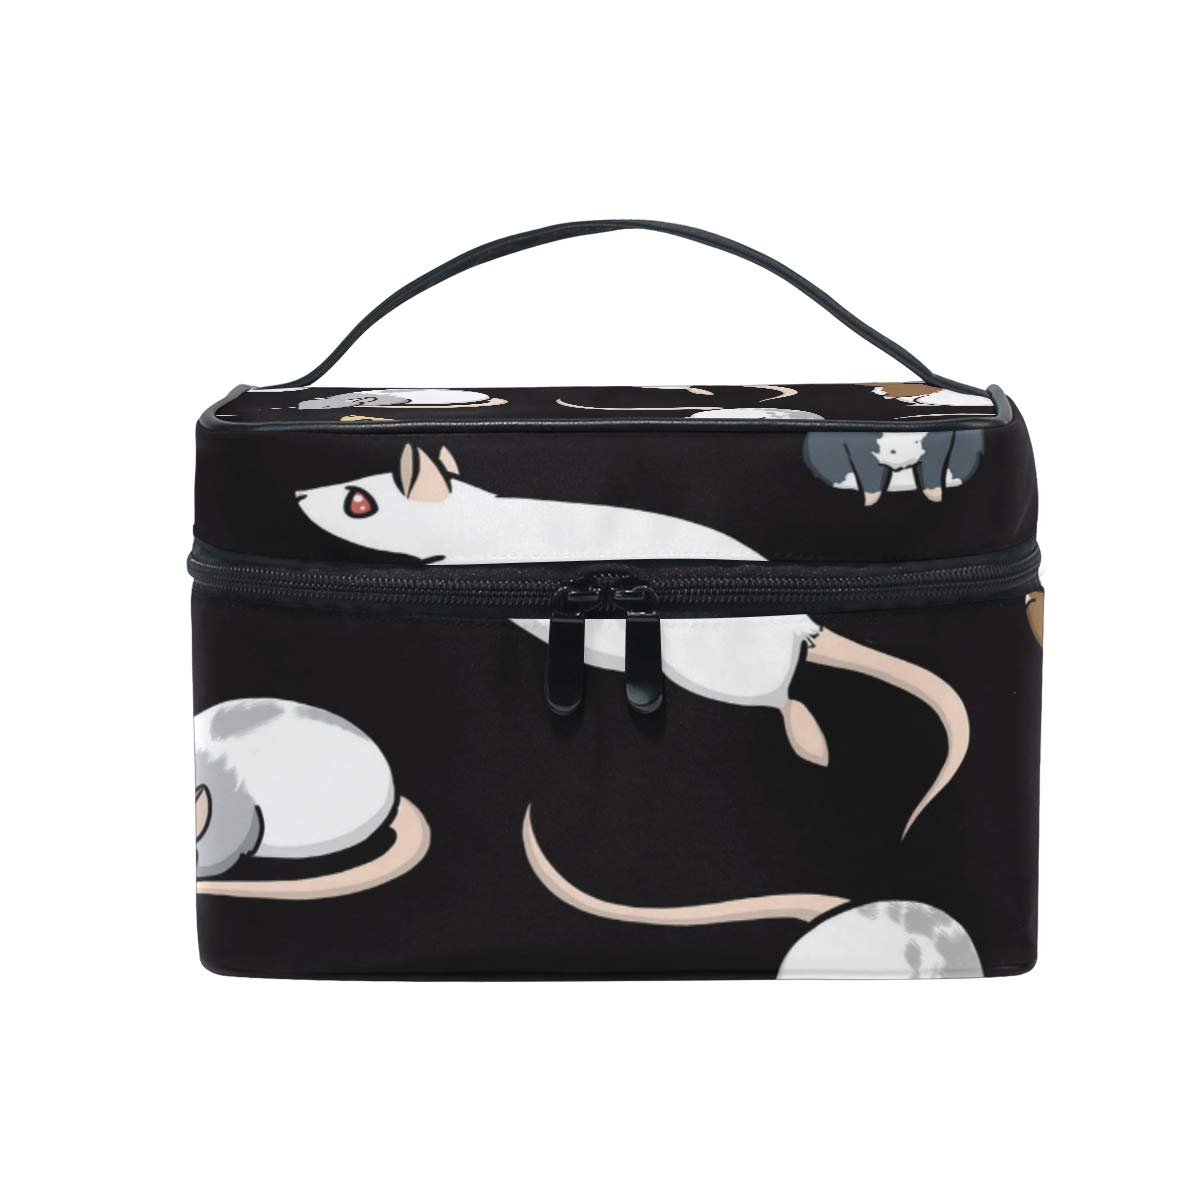 Travel Cosmetic Bag Mouse Rat Toiletry Makeup Bag Pouch Tote Case Organizer Storage For Women Girls